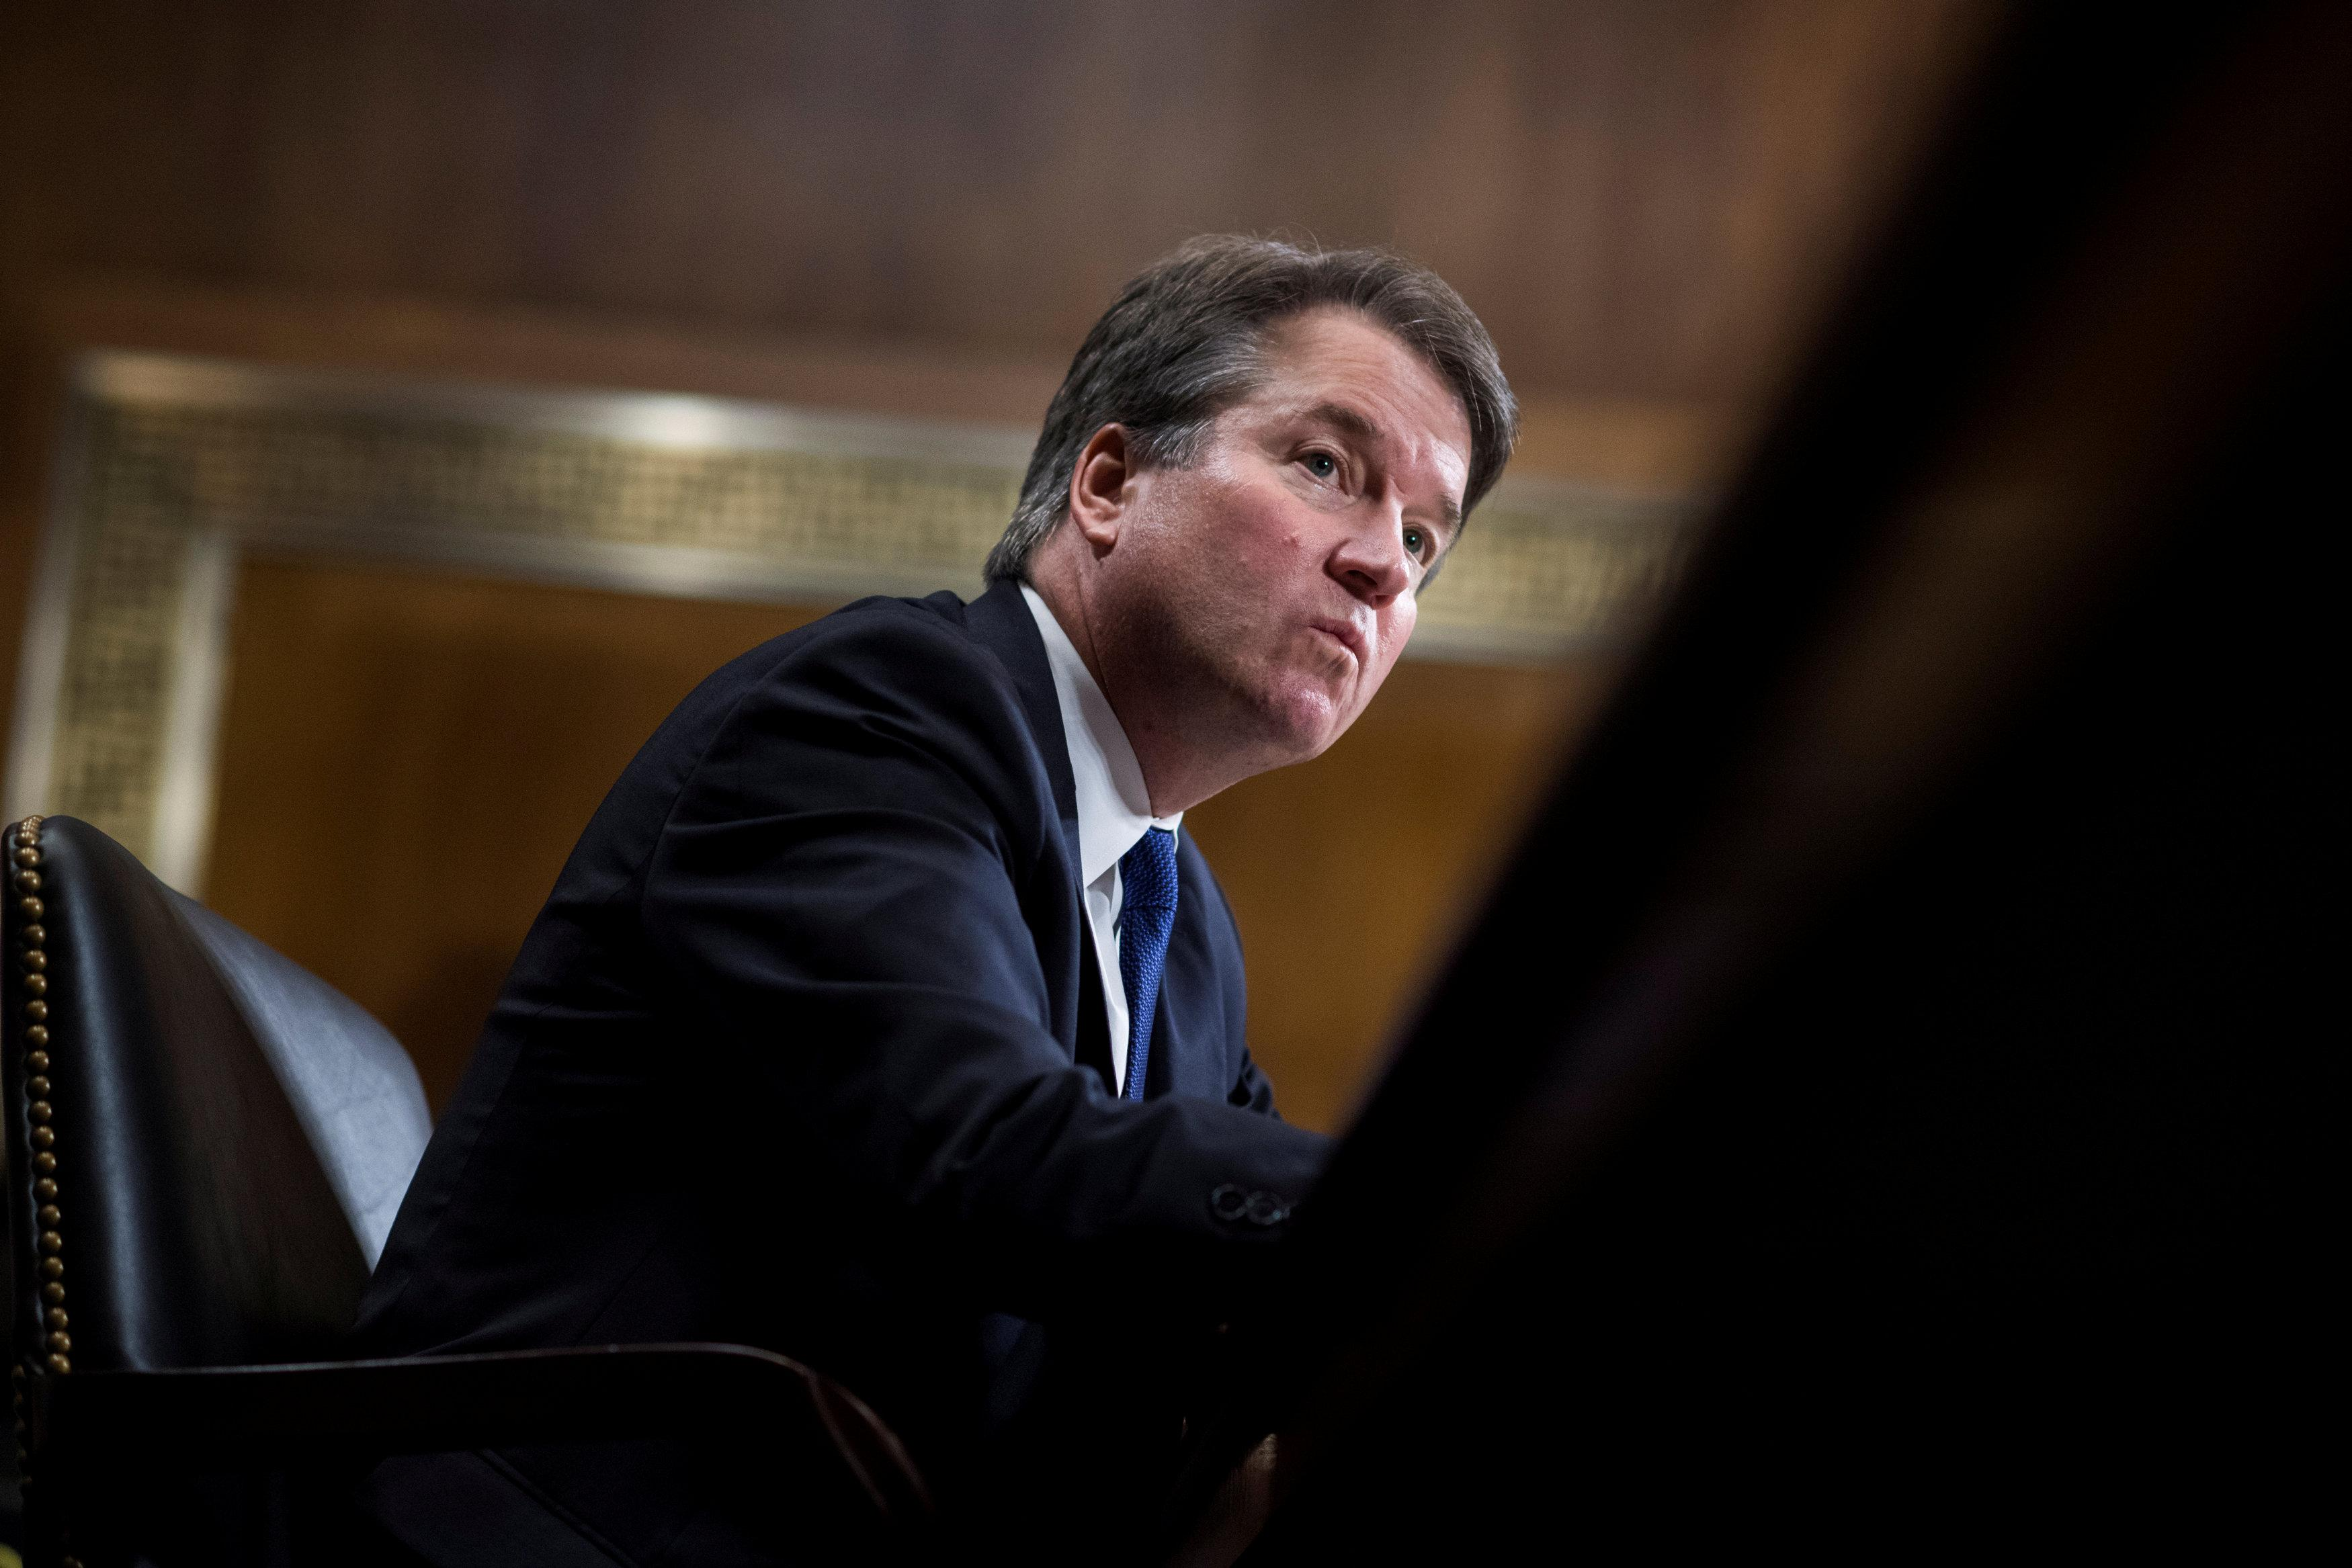 Sparks or harmony with Kavanaugh on the U.S. Supreme Court?